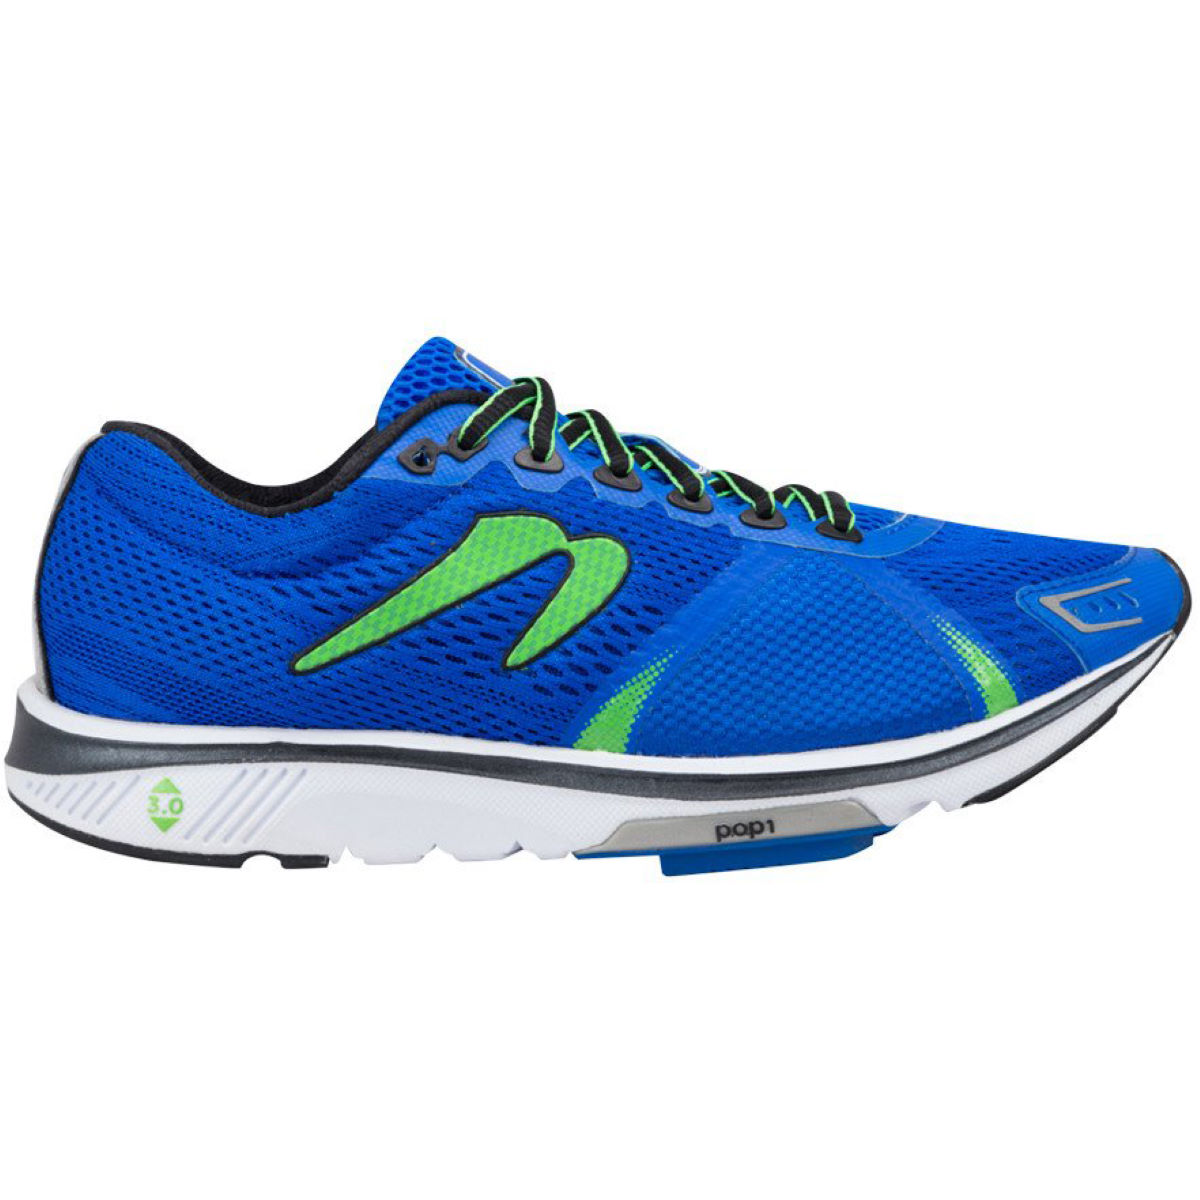 Chaussures Newton Running Shoes Gravity VI - 9,5 UK Bleu